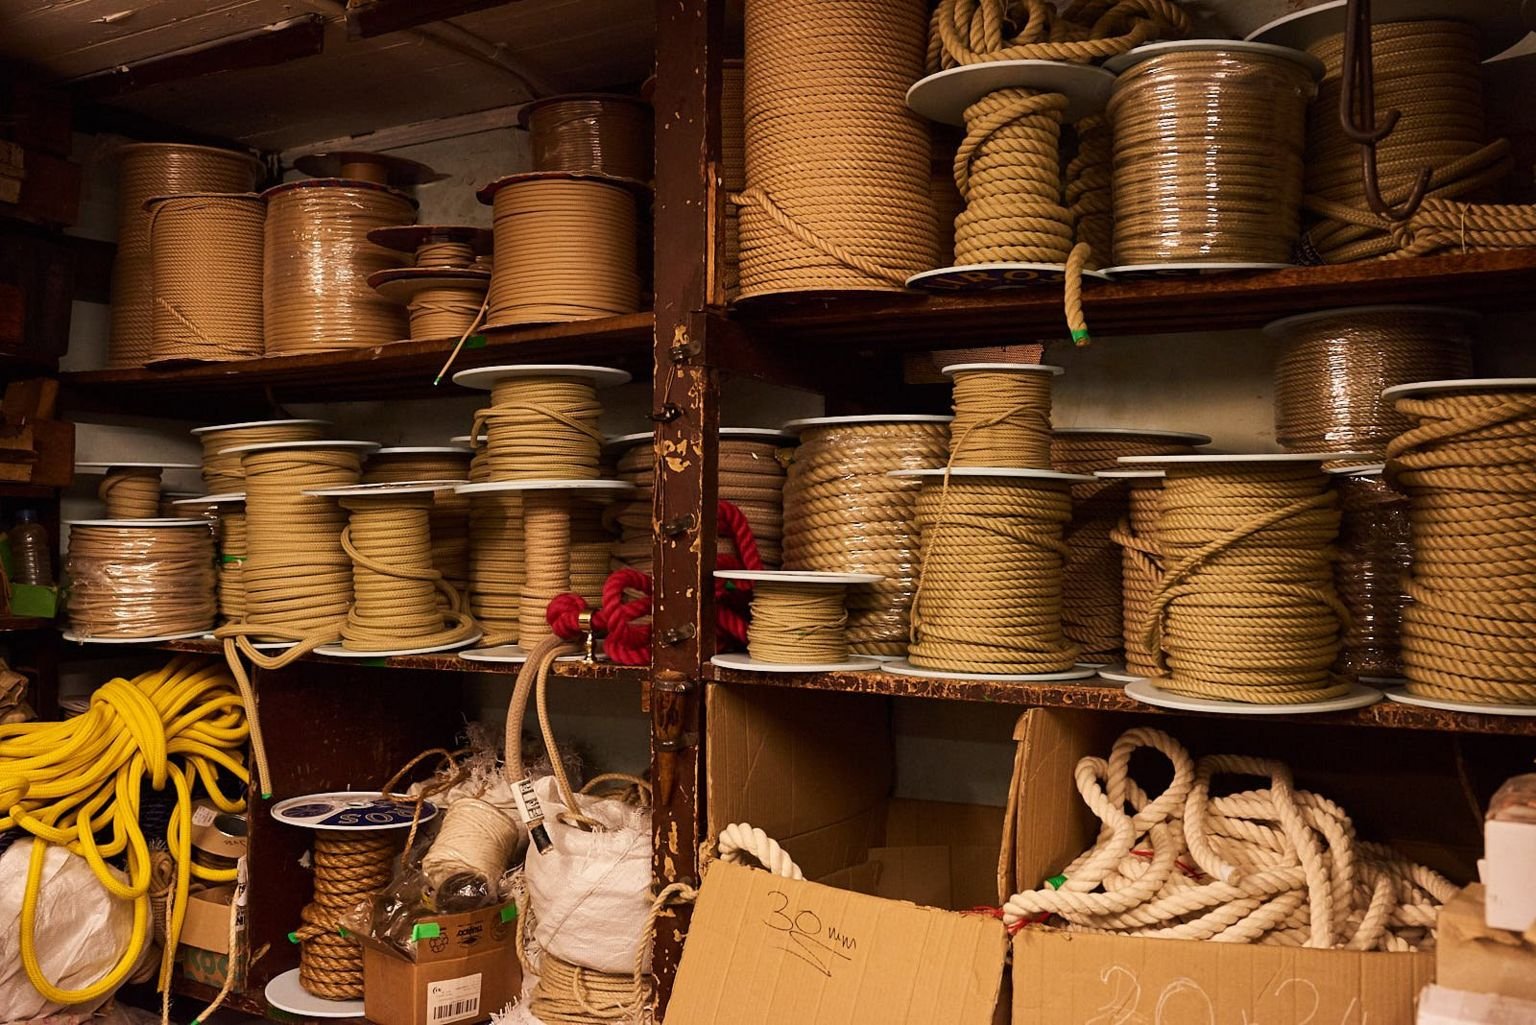 Reels of rope stacked up